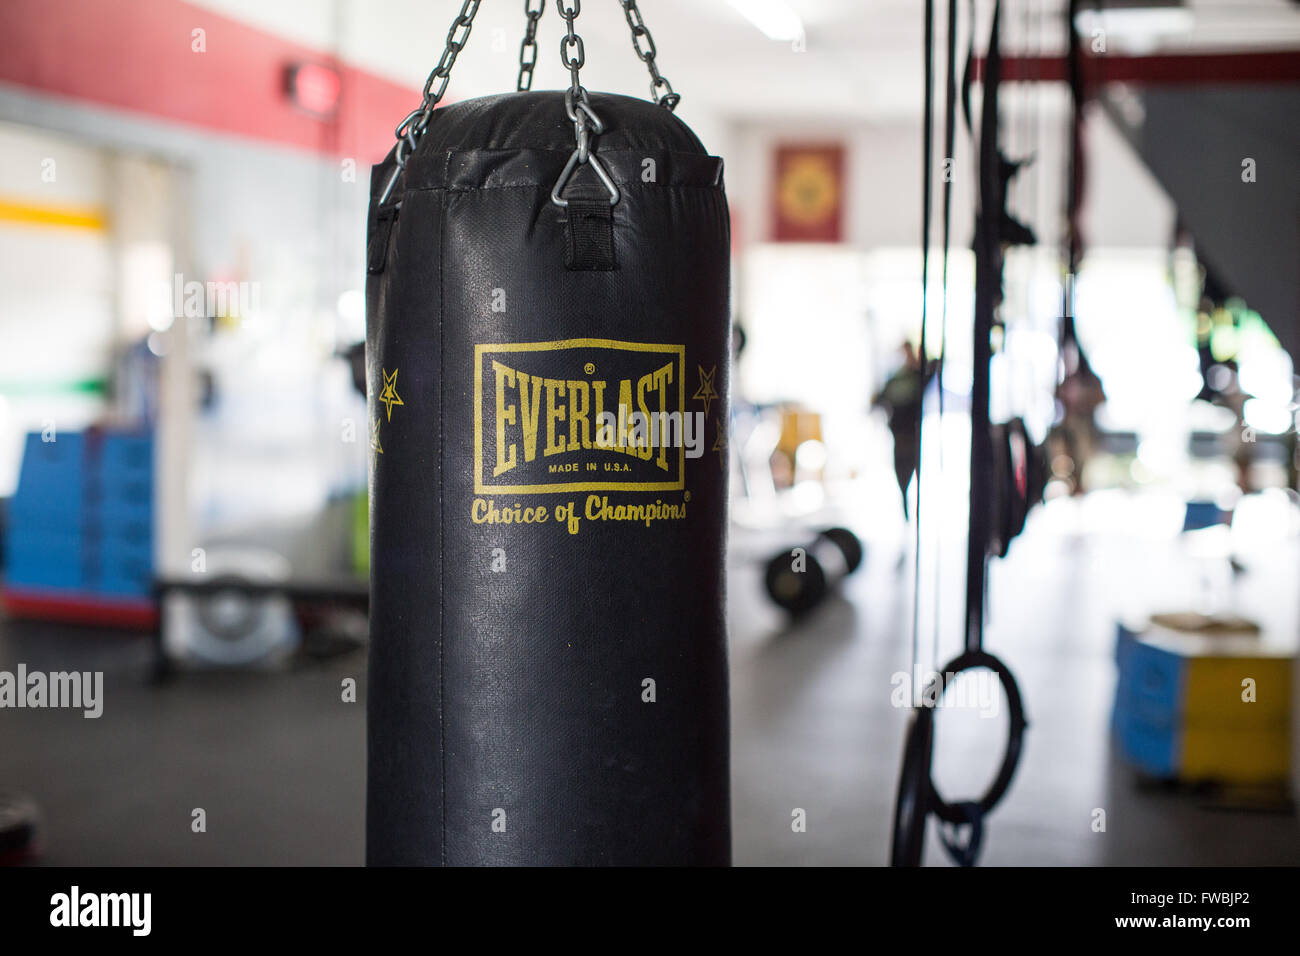 Un Everlast Sacco boxe appeso all'interno di una scatola di CrossFit in California. Immagini Stock